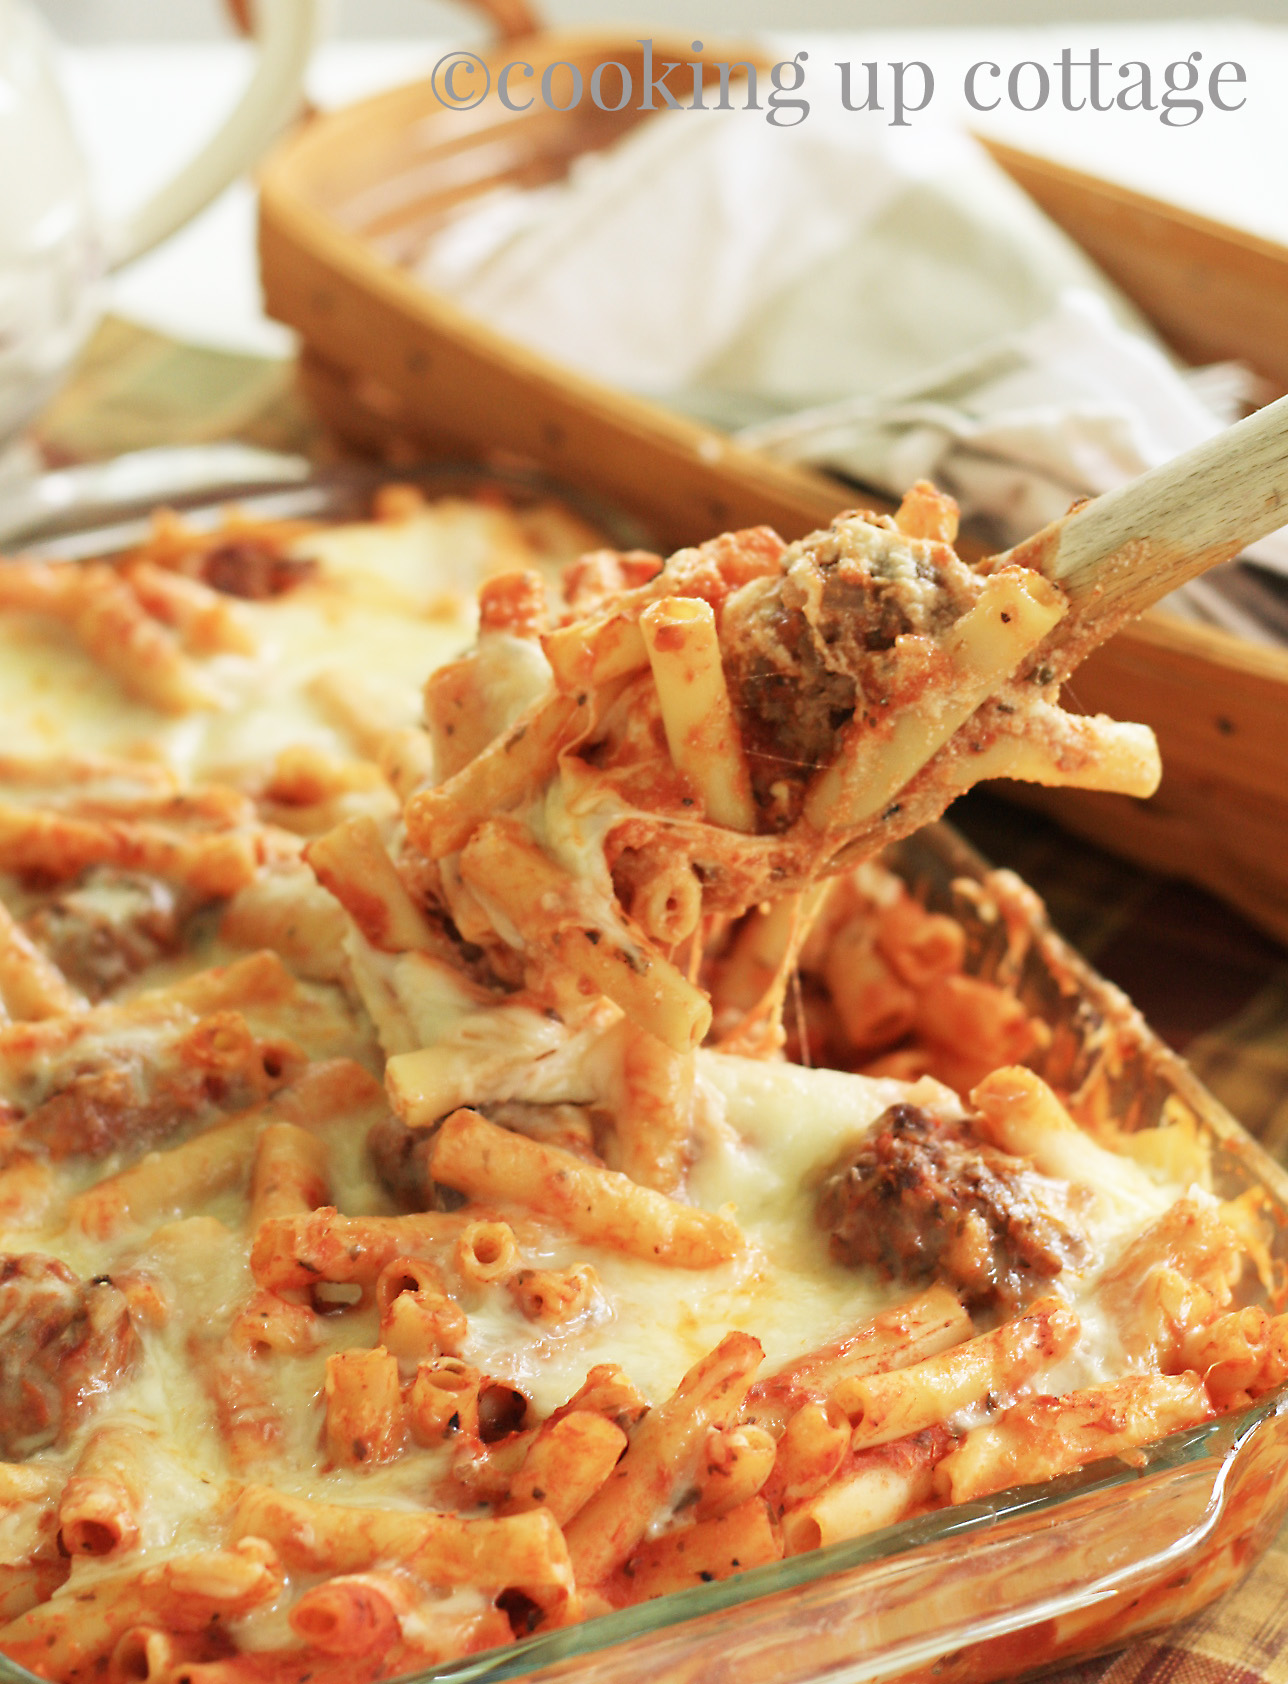 Baked Ziti With Meatballs Cooking Up Cottage